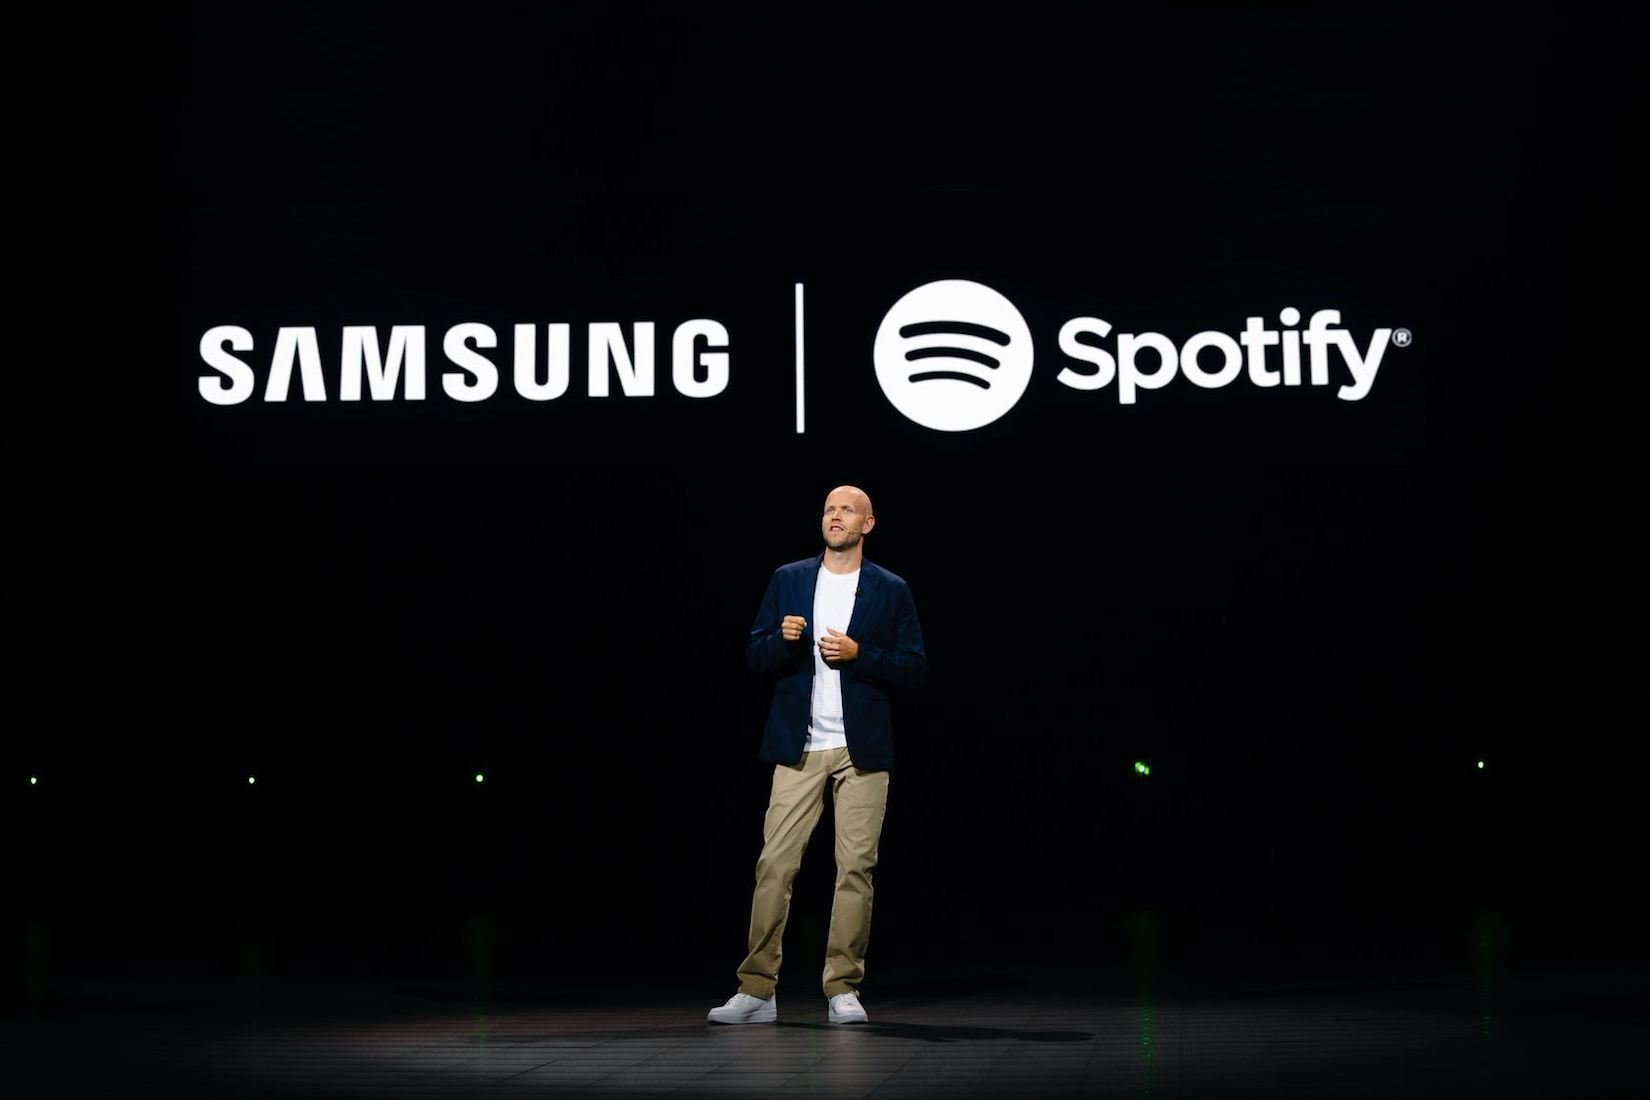 Spotify isn't playing nice with Galaxy smartphones - SamMobile